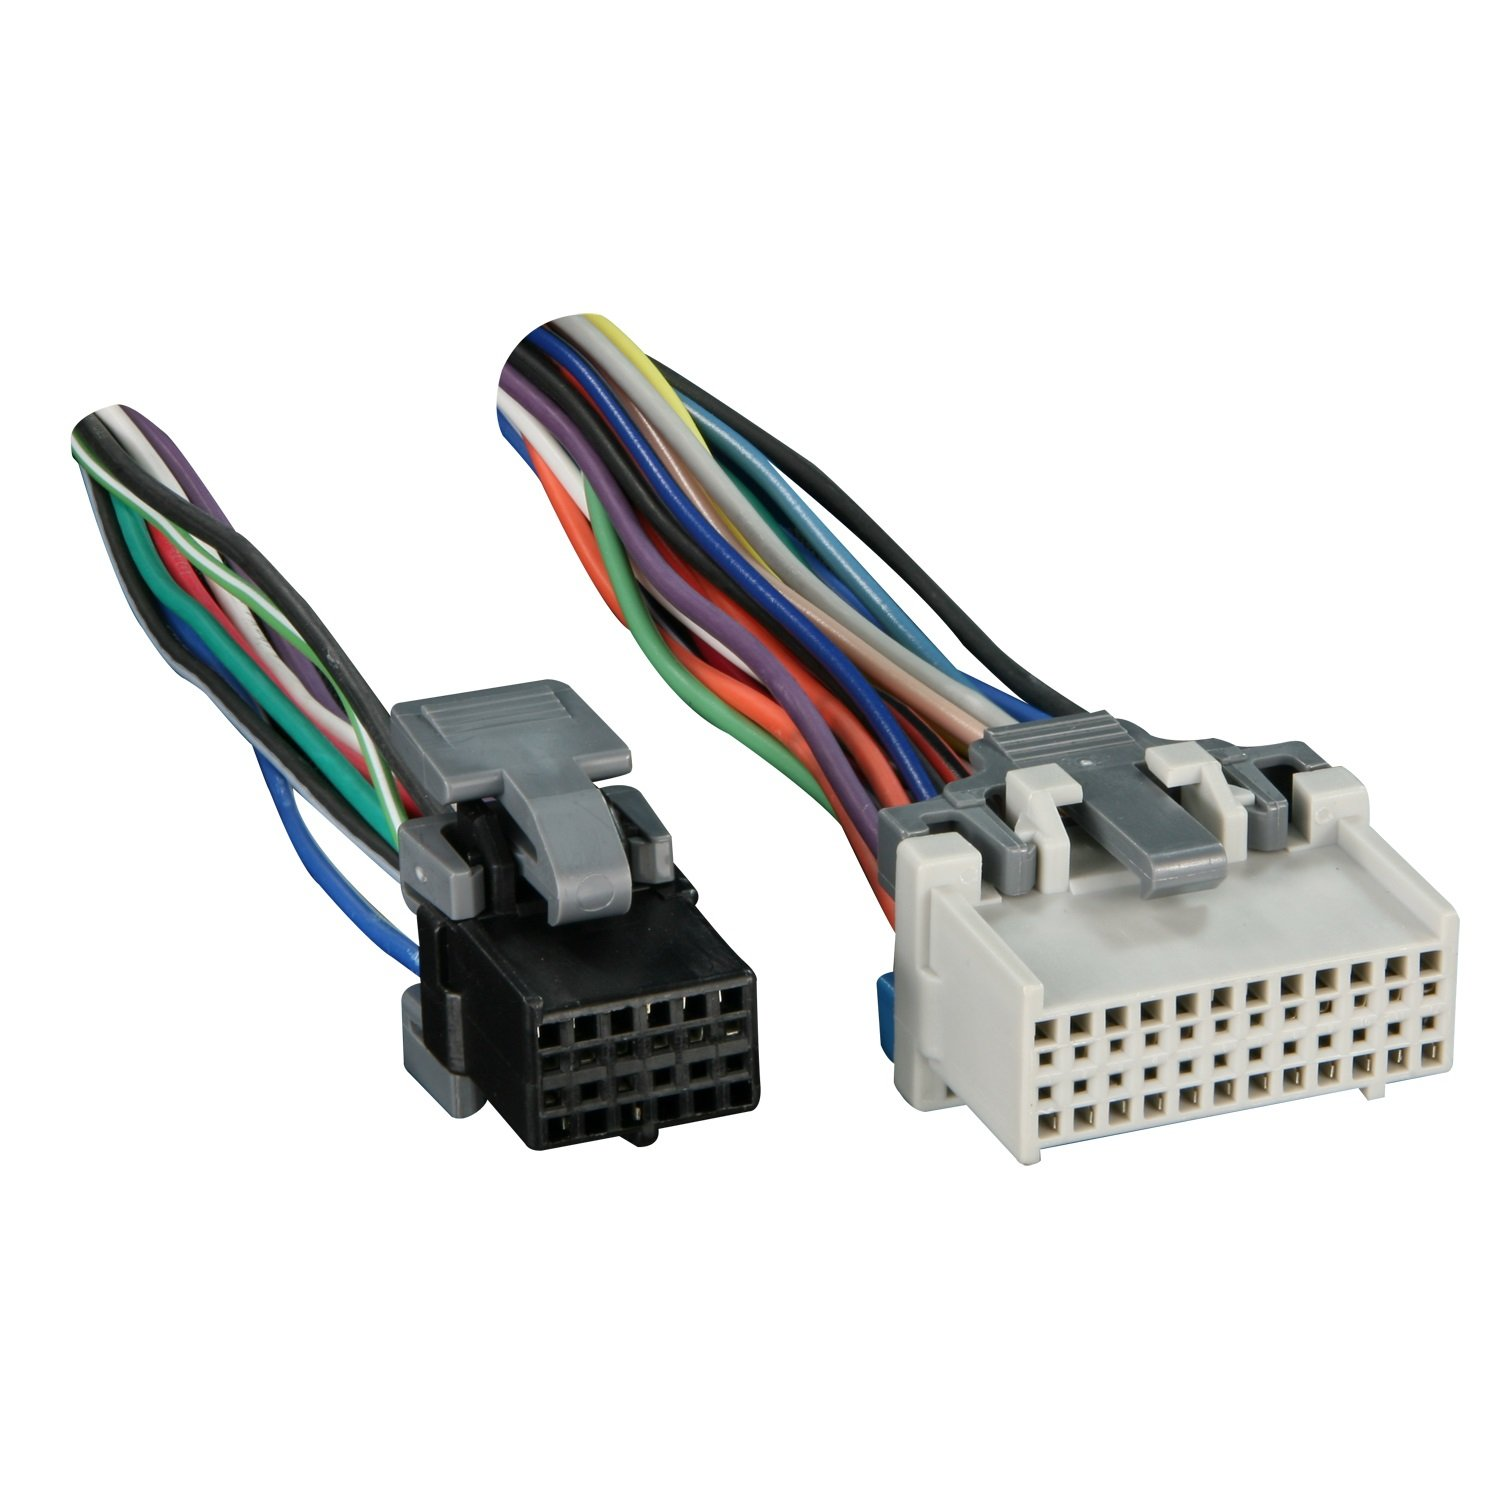 711log4bdML._SL1500_ amazon com metra turbowires 71 2003 1 wiring harness car electronics how much does it cost to replace a wiring harness at cita.asia